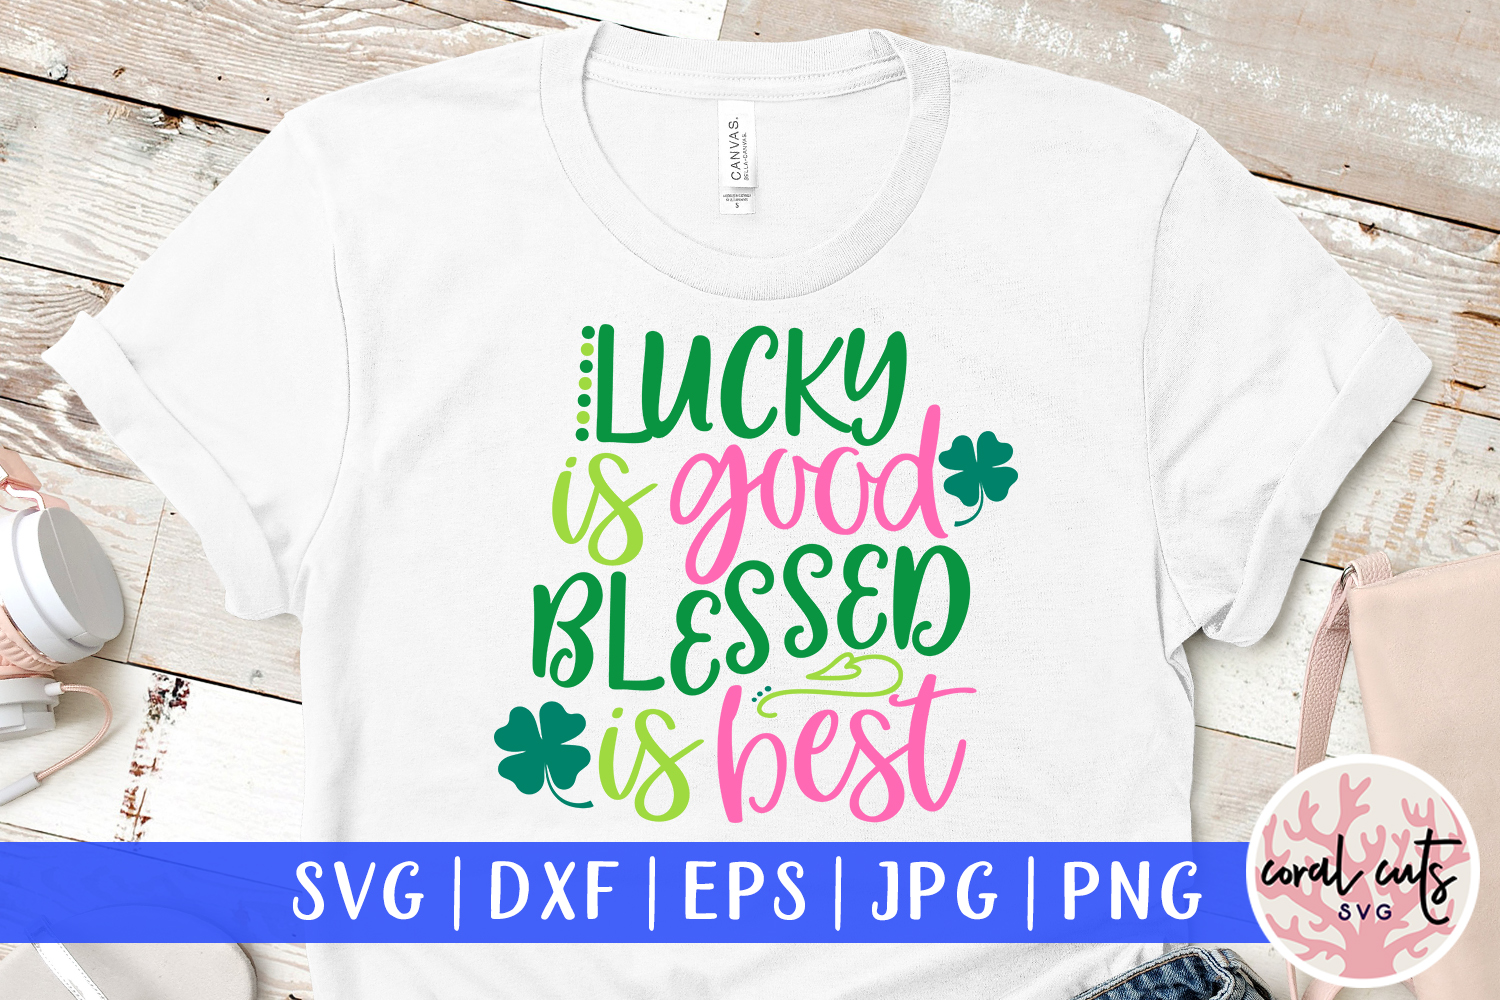 Download Free Lucky Is Good Blessed Is Best Svg File Graphic By Coralcutssvg for Cricut Explore, Silhouette and other cutting machines.